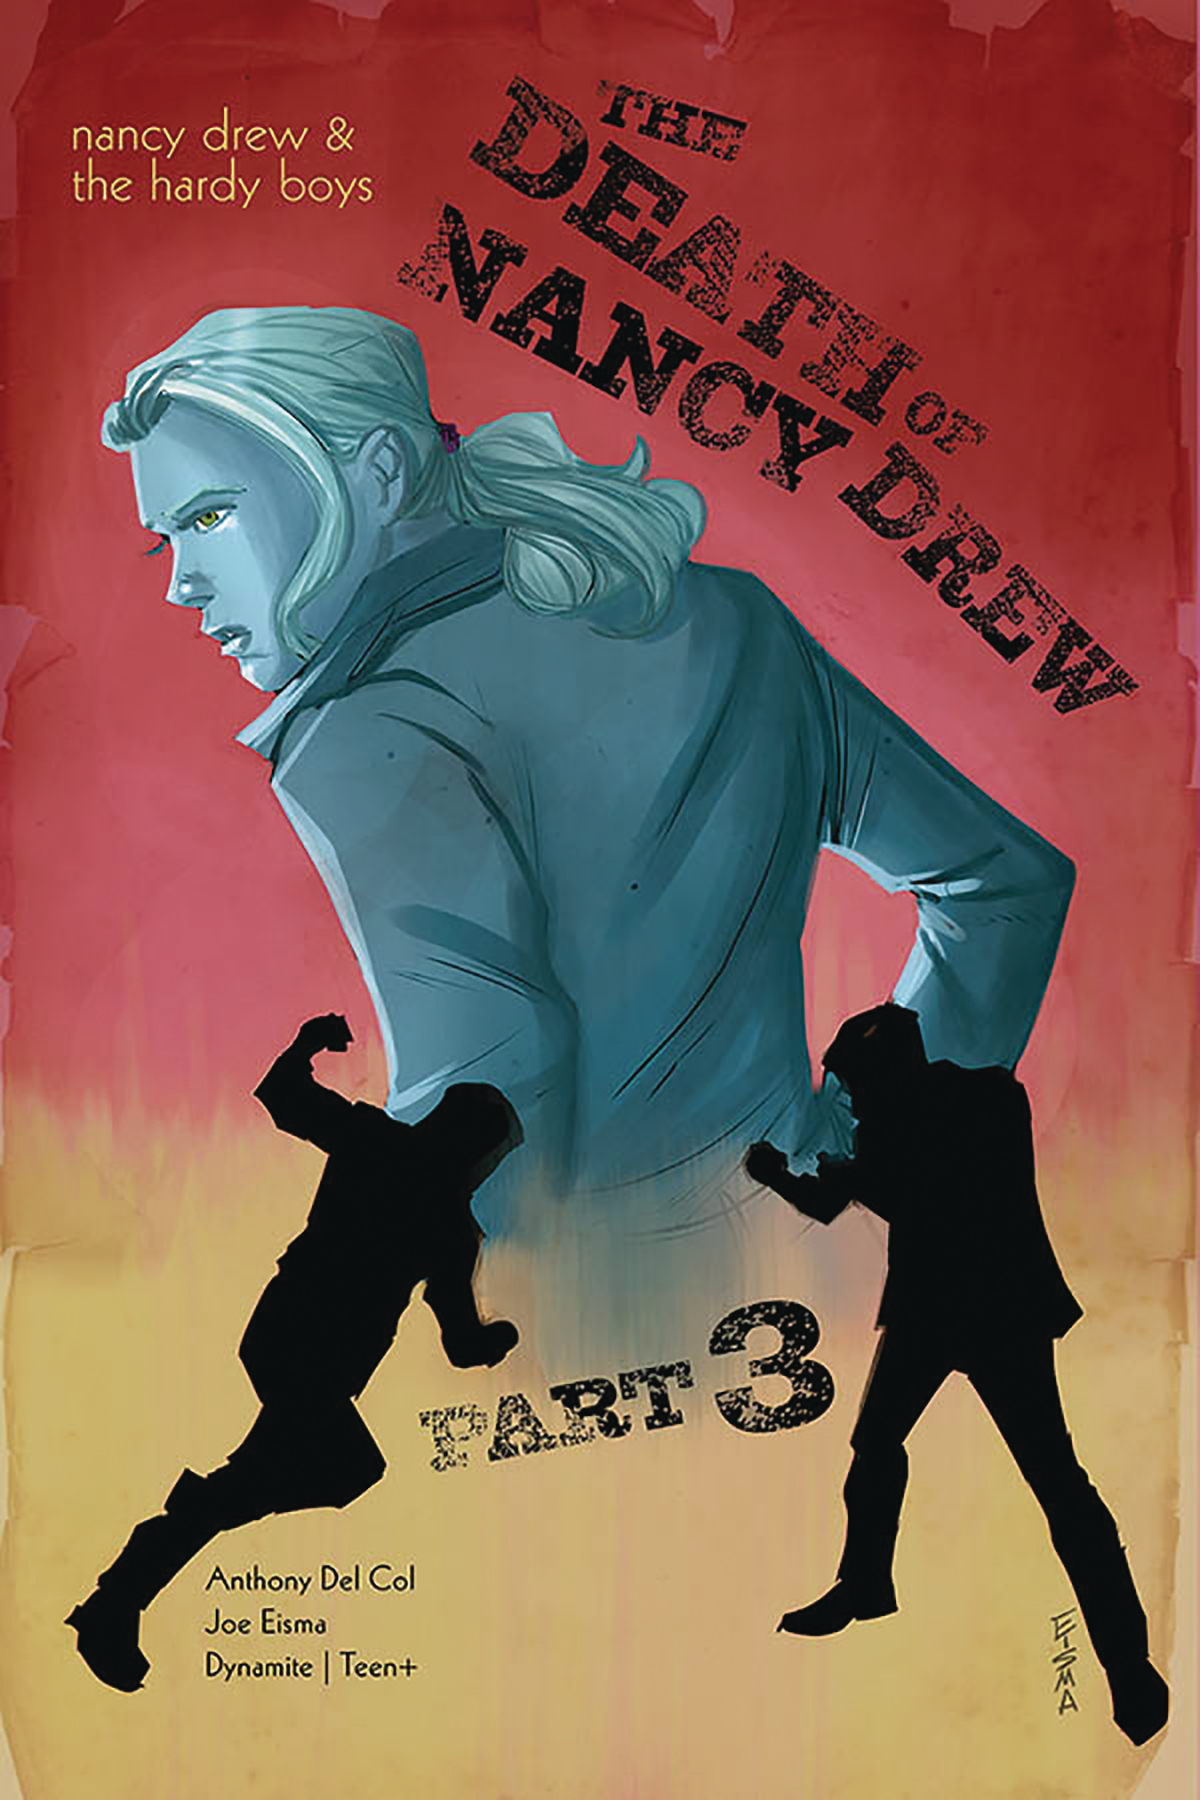 NANCY DREW & HARDY BOYS DEATH OF NANCY DREW #3 CVR A EISMA